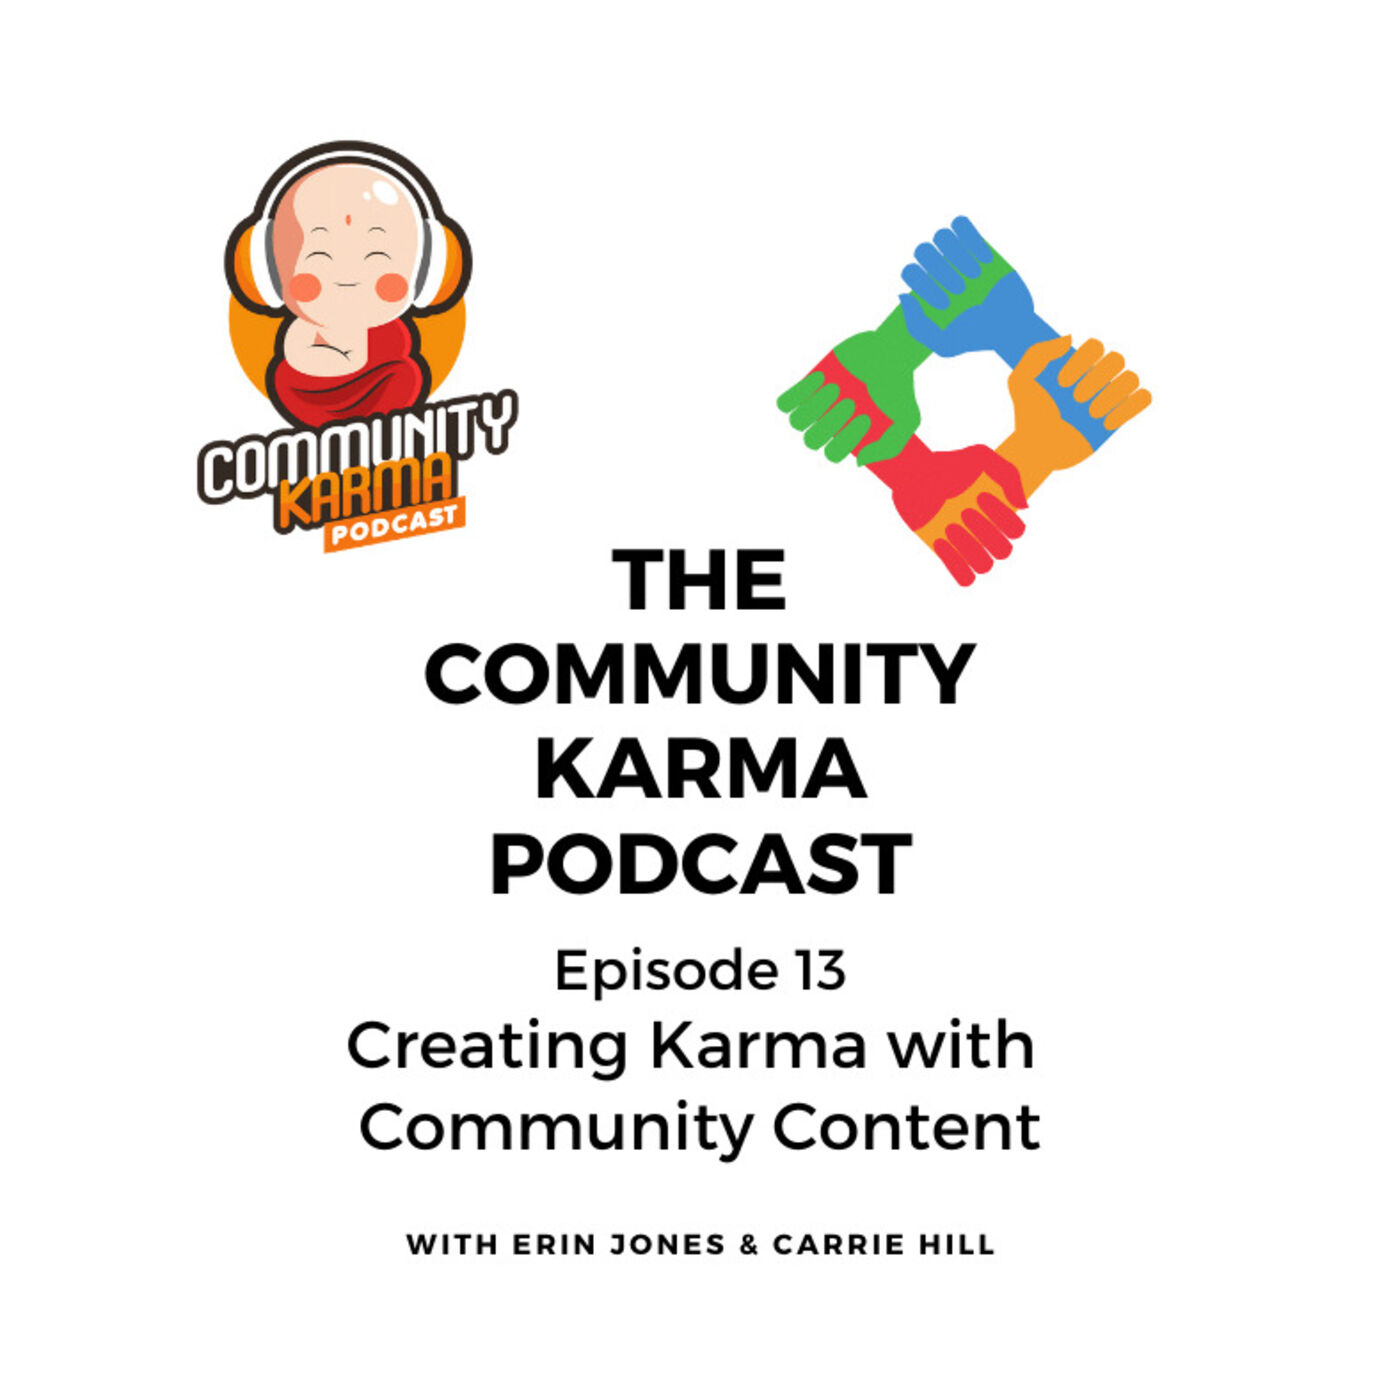 Episode 13: Creating Karma with Community Content